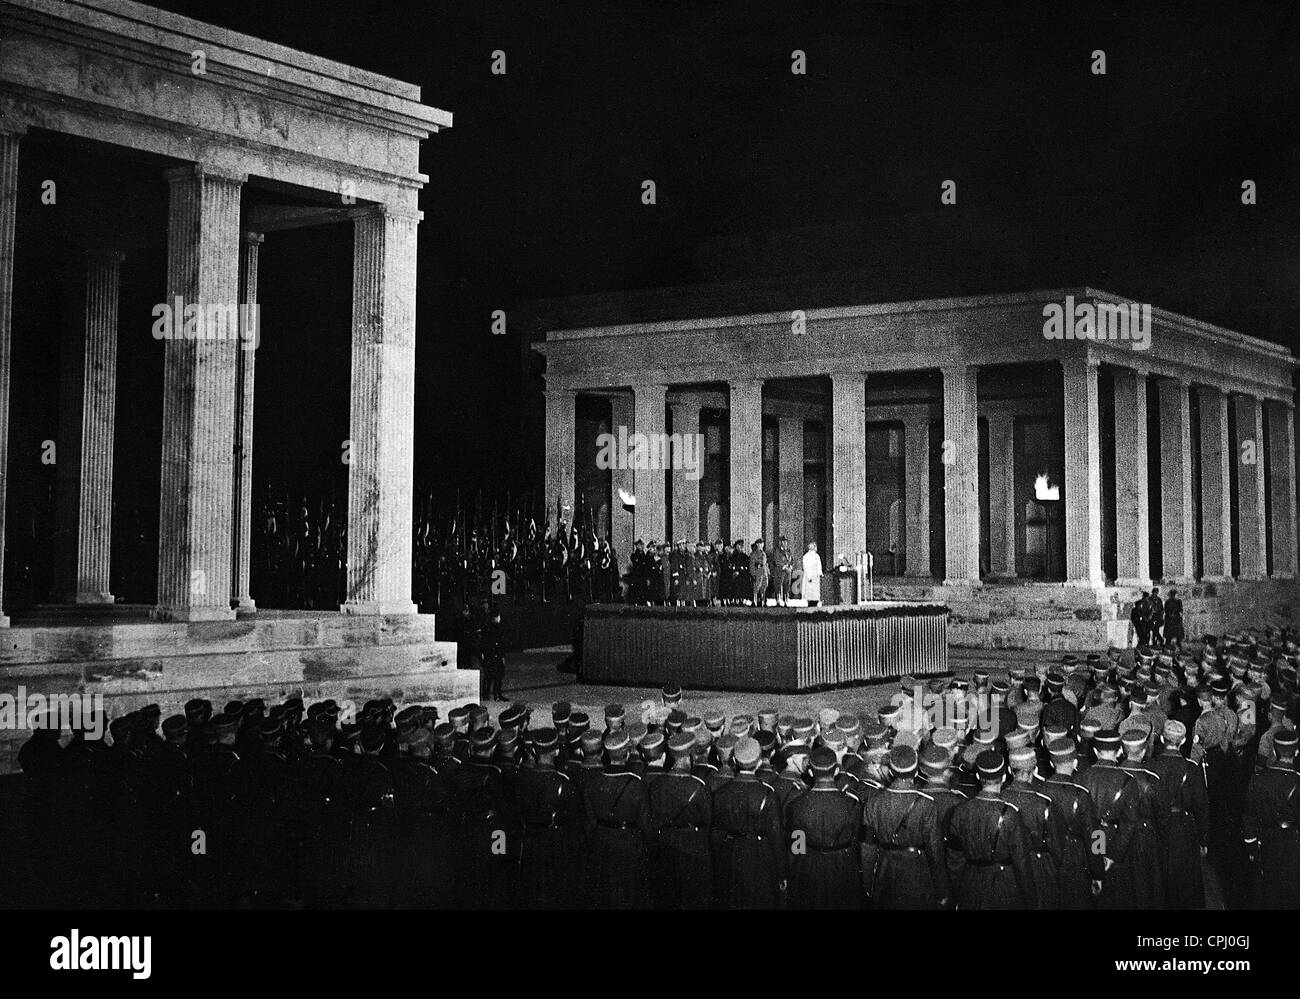 Swearing in of the political leaders of the Nazi Party in Munich, 1936 - Stock Image